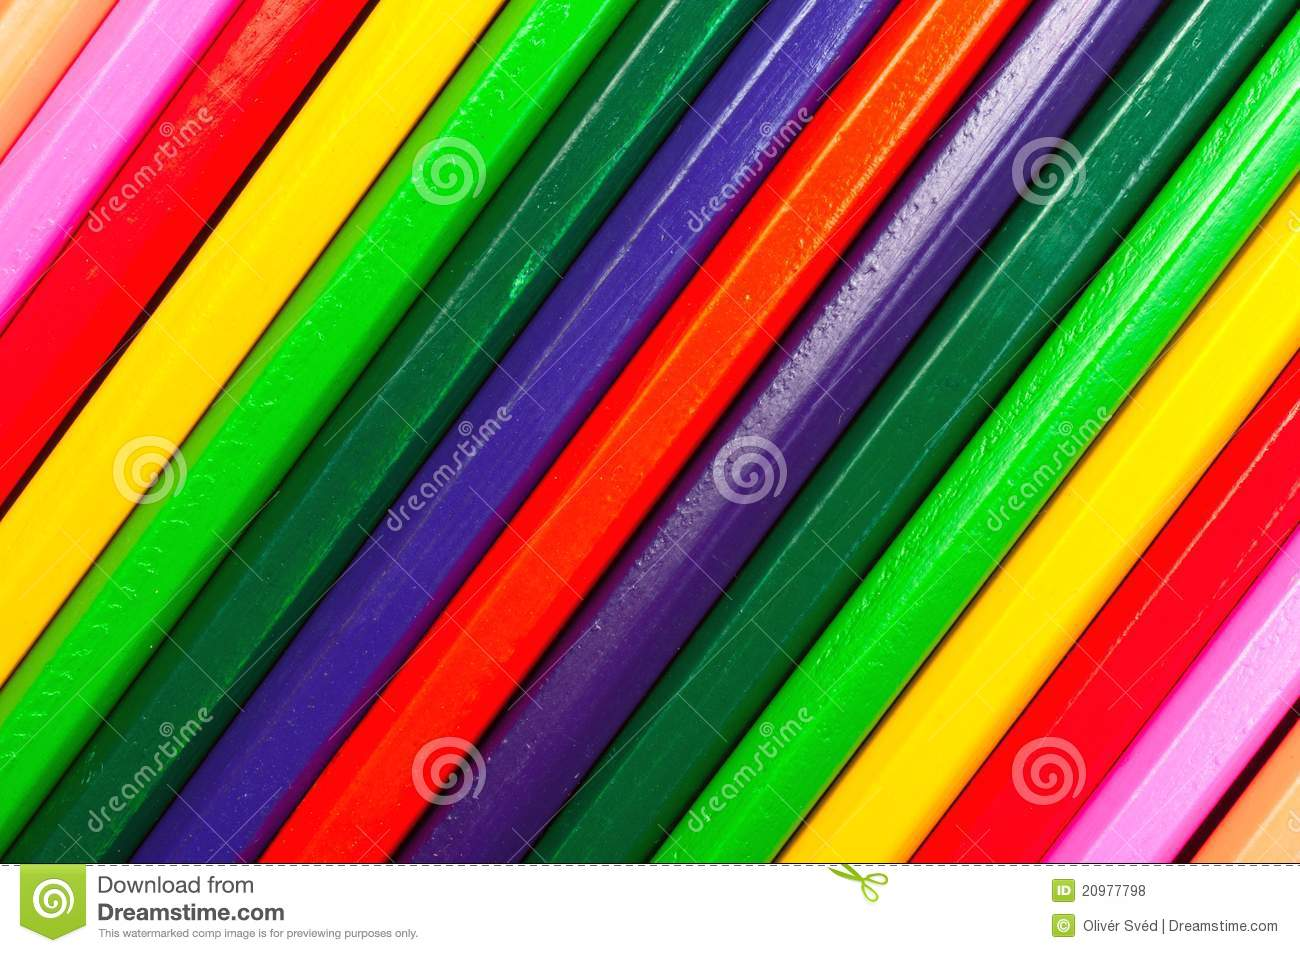 Texture of colored pencils stock photo. Image of office ...